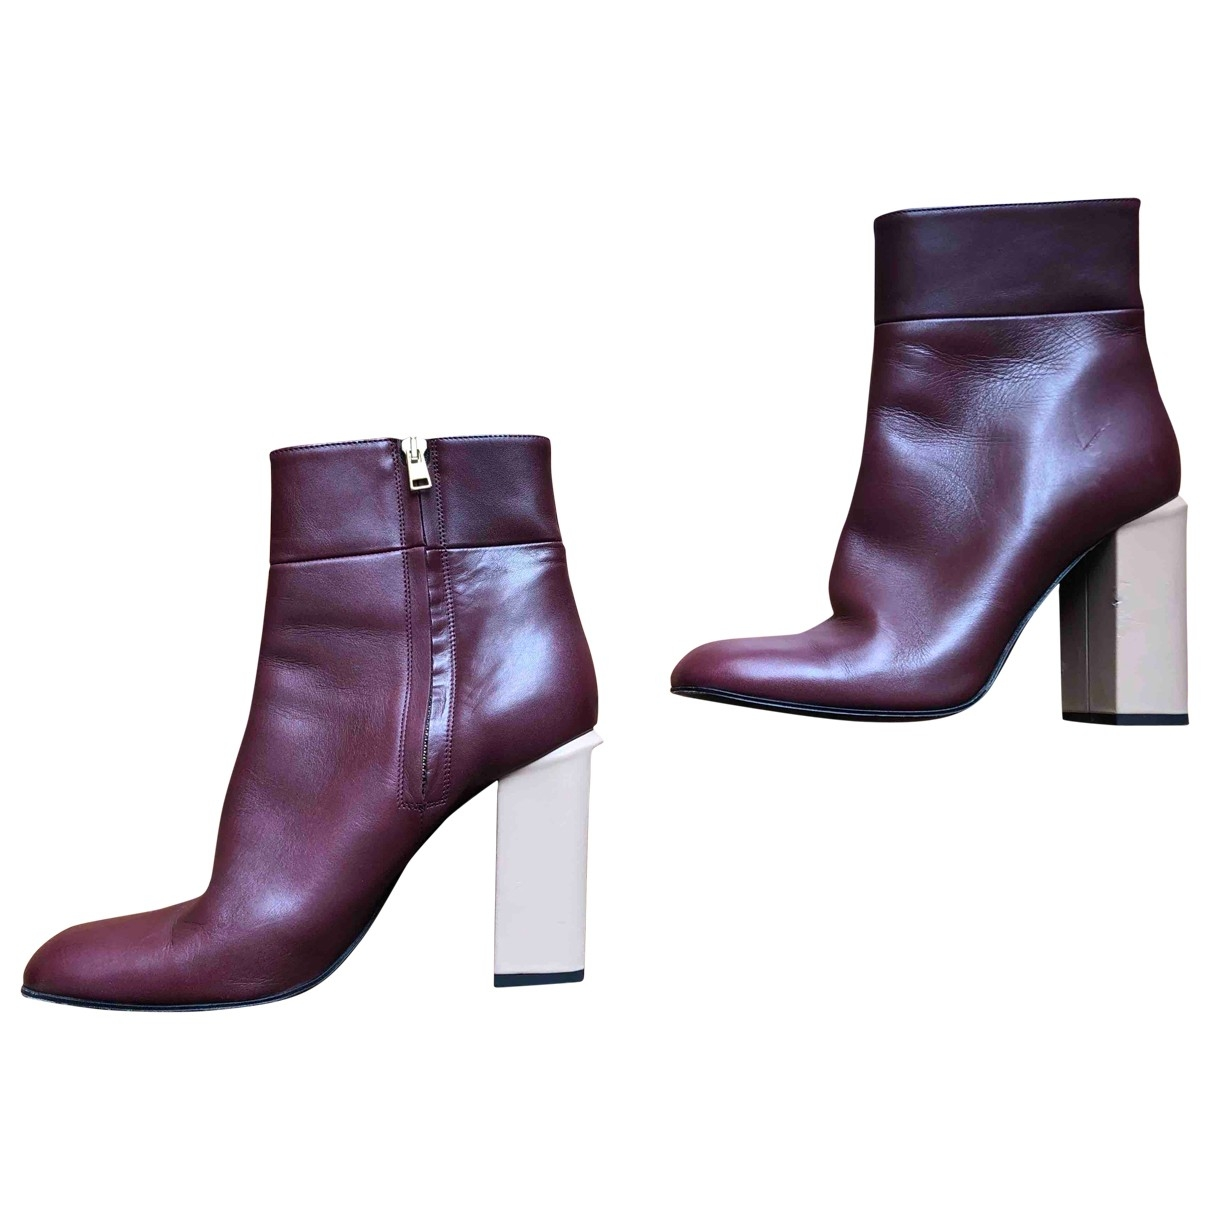 Marni \N Burgundy Leather Ankle boots for Women 40 EU